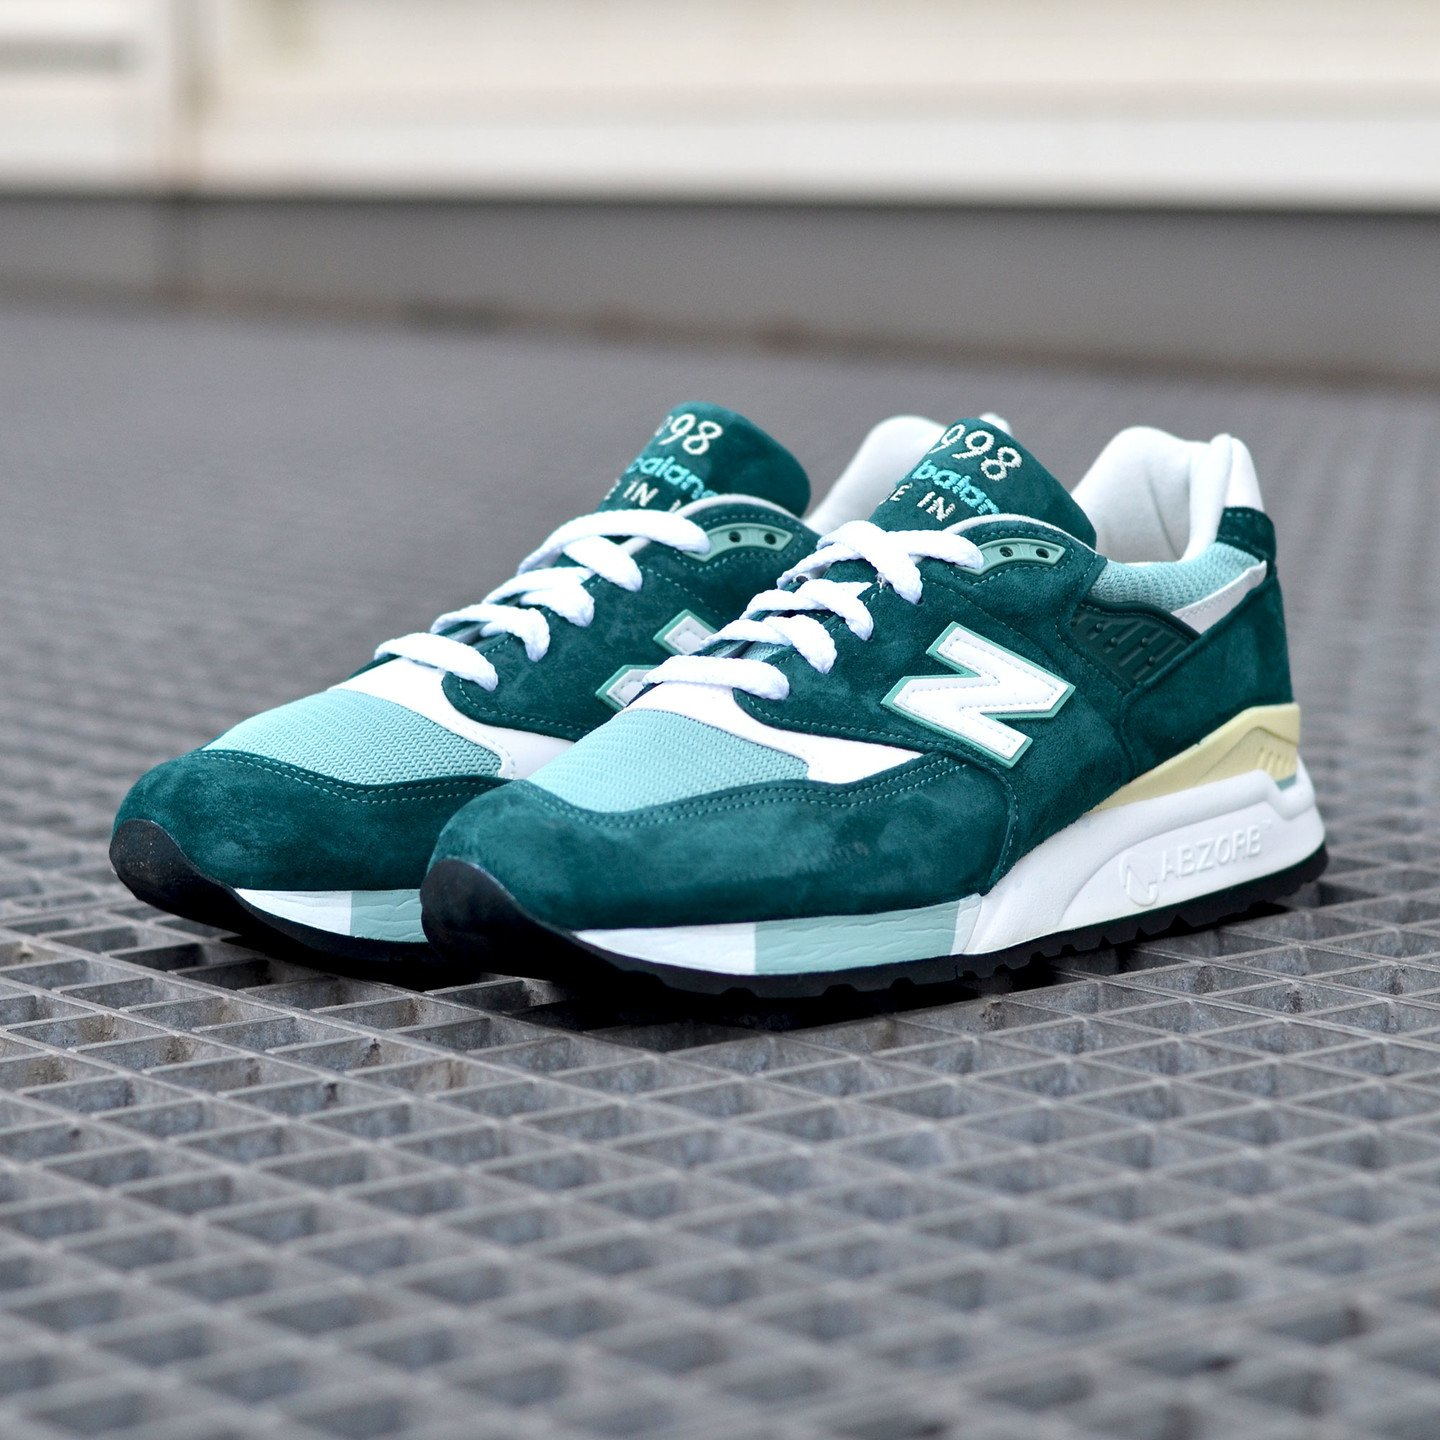 New Balance M998 Made in USA Sea Green / White M998CSAM-41.5